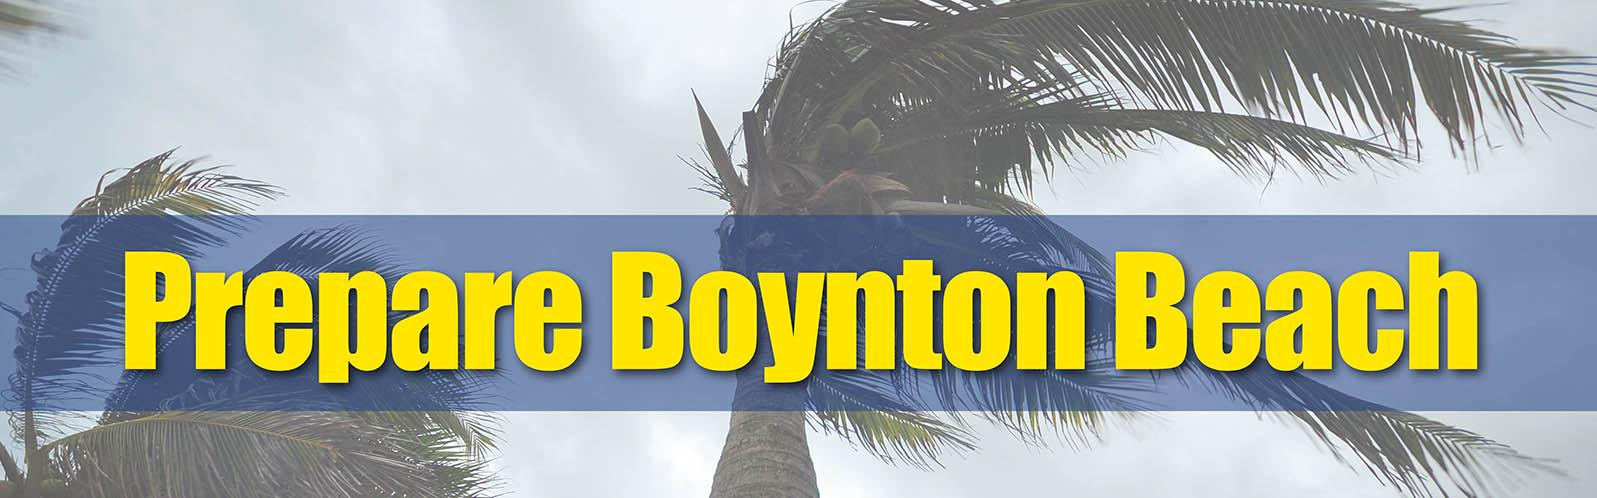 prepare boynton beach with trees in background